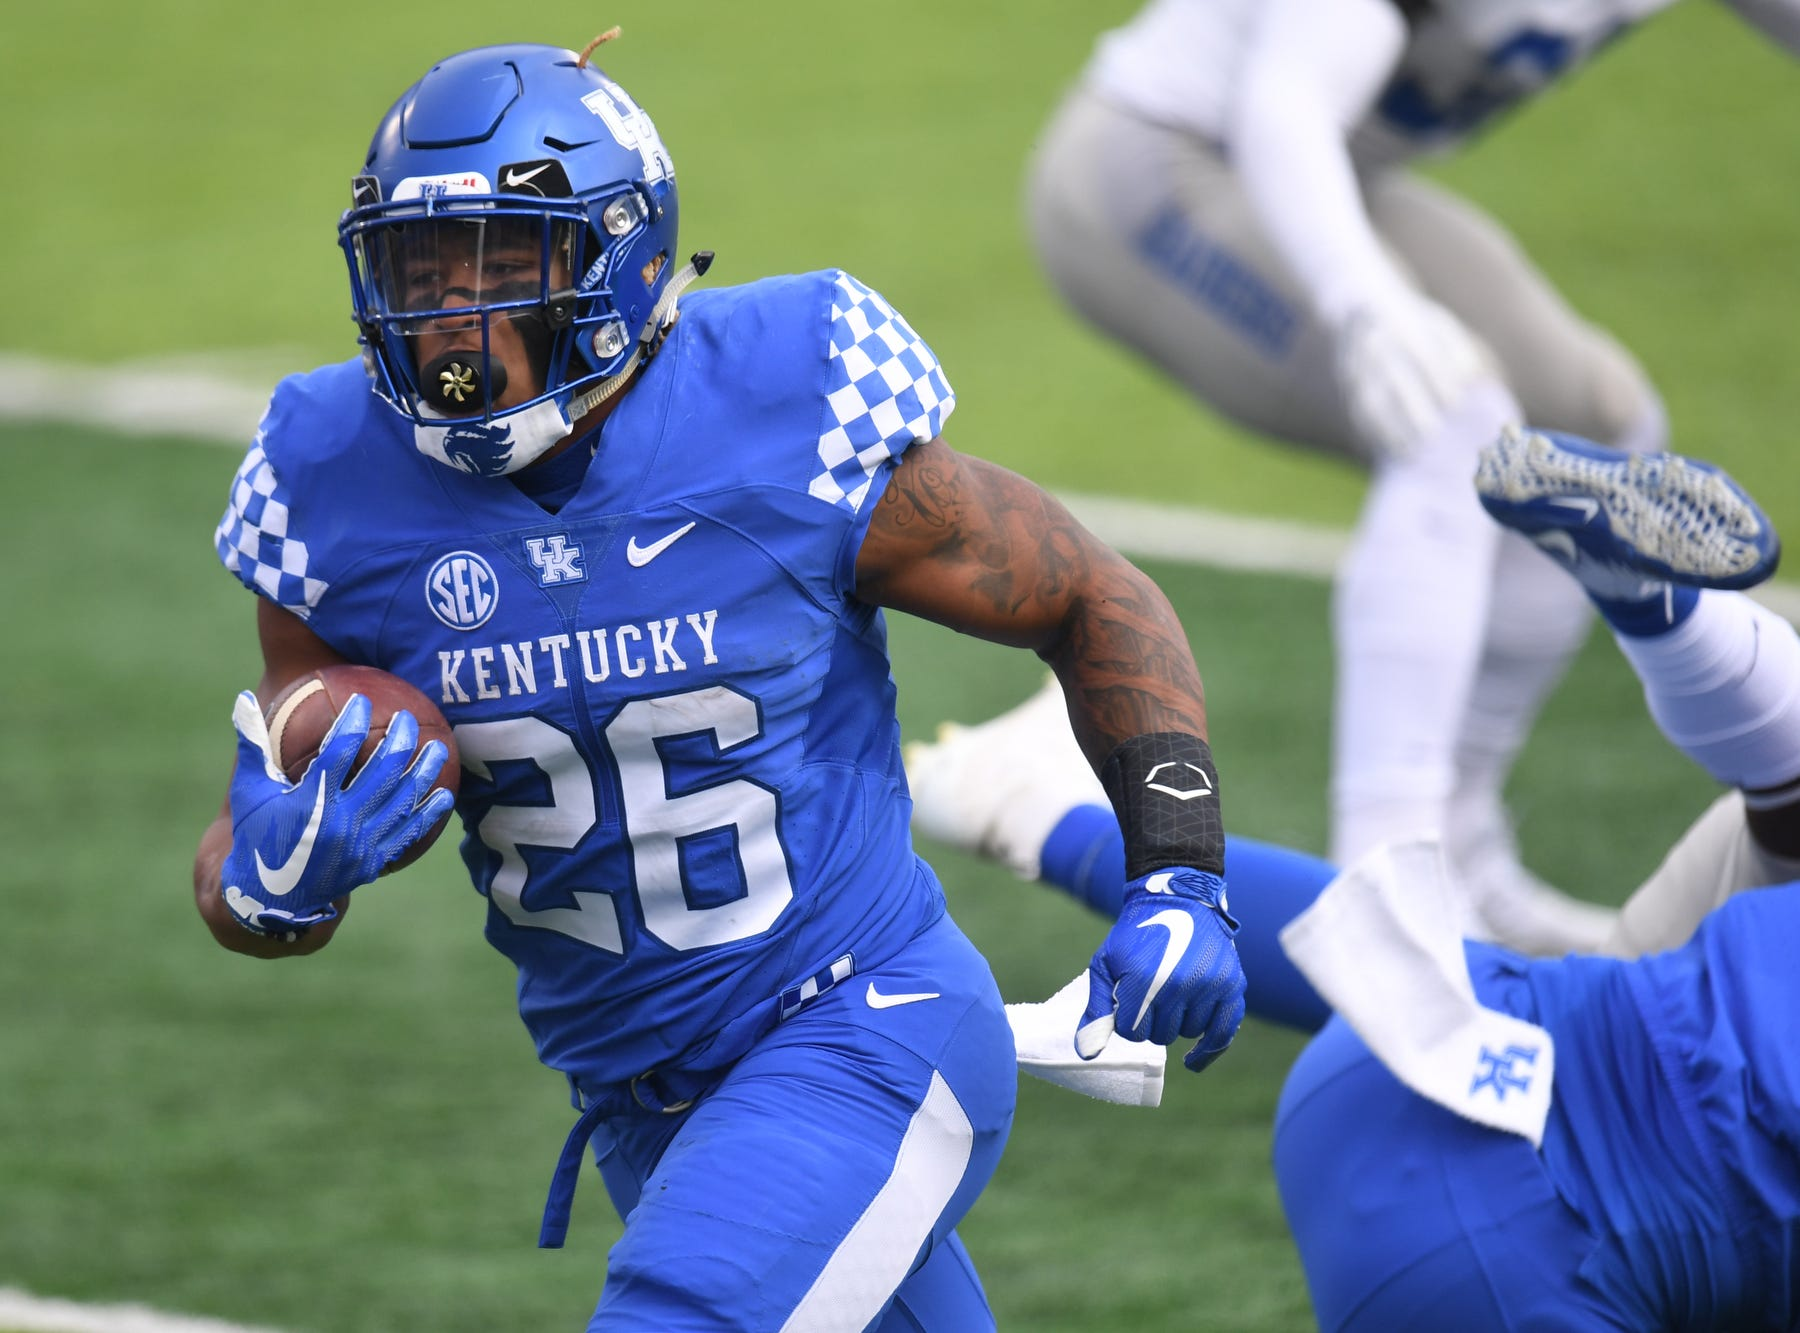 UK RB Benny Snell Jr. runs for a touchdown during the University of Kentucky football game against Middle Tennessee at Kroger Field in Lexington, Kentucky on Saturday, November 17, 2018.